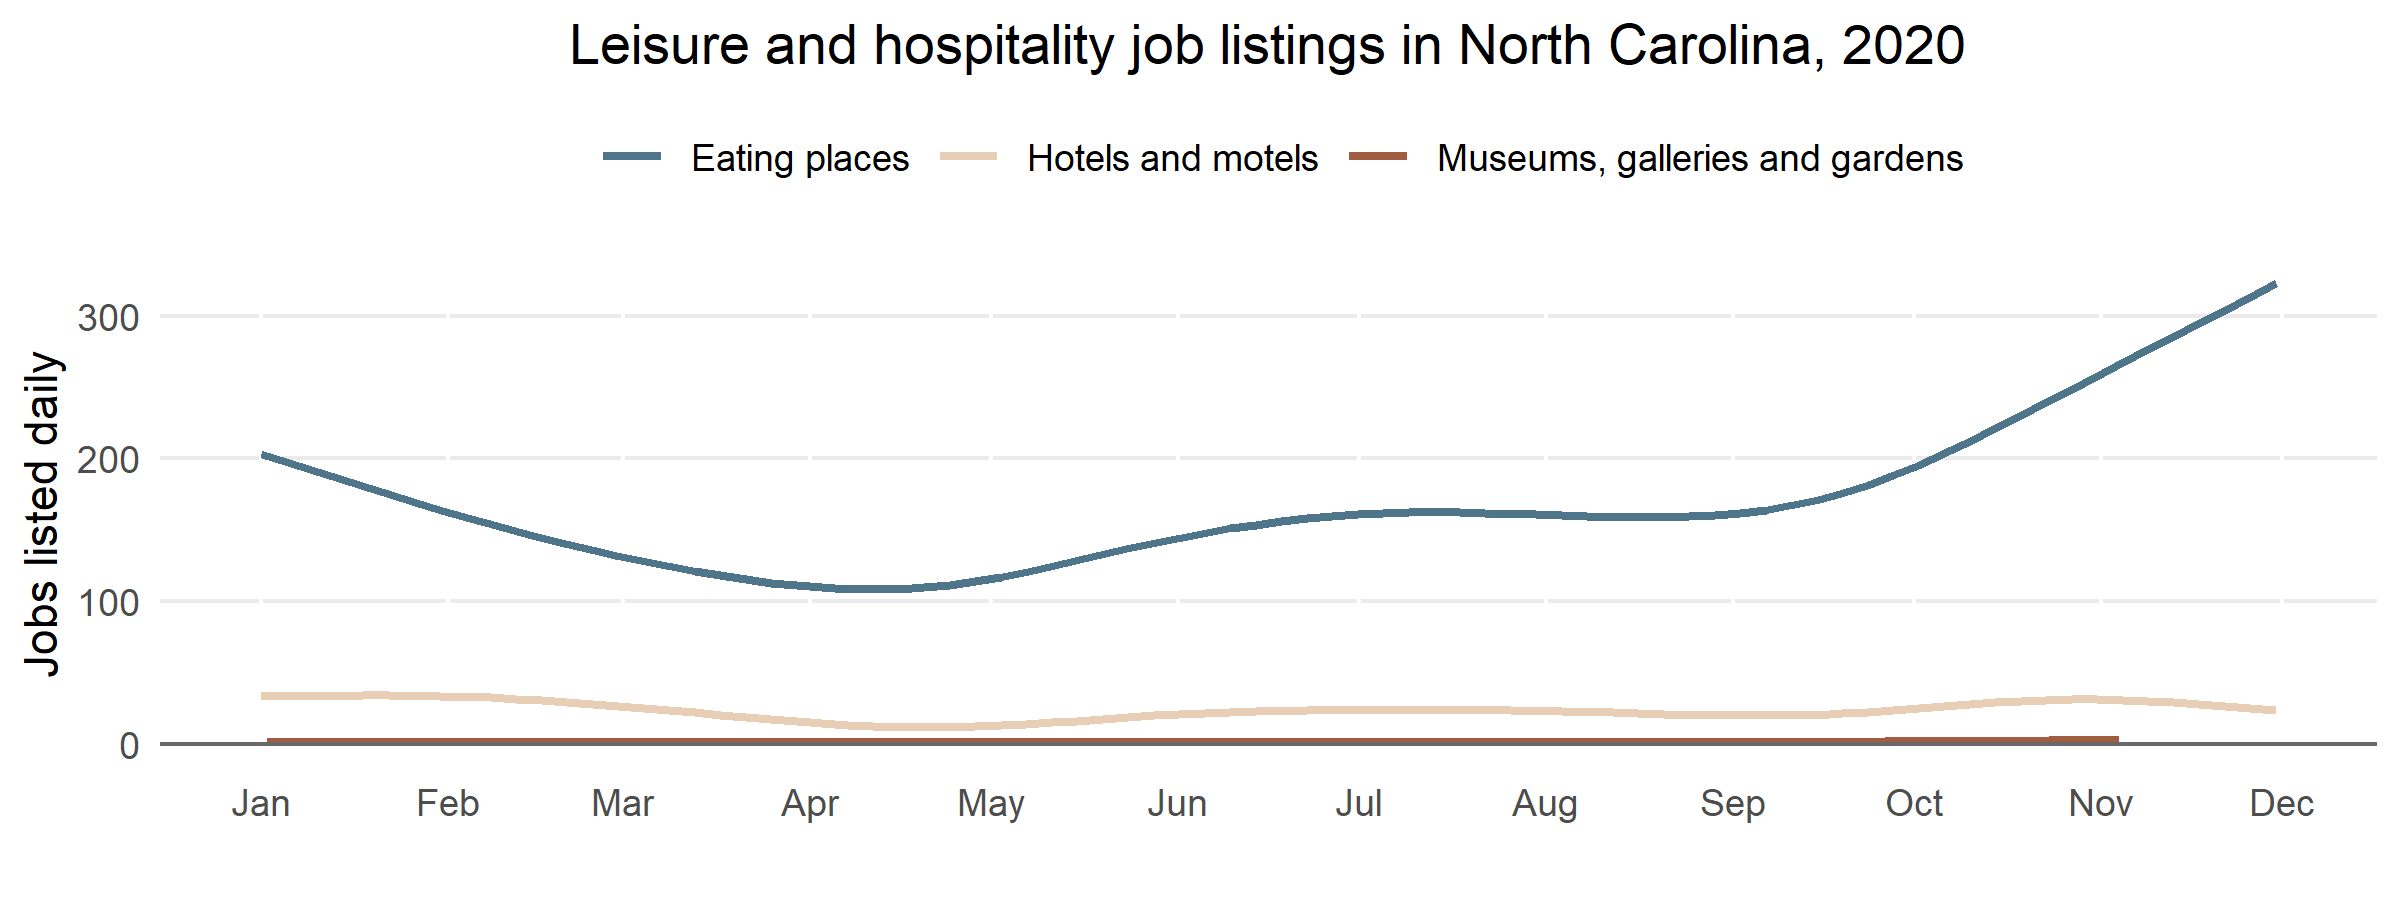 "A line chart titled ""Job listings in leisure and hospitality."" It has three lines, one representing eating places, another representing hotels and motels, and another representing museums, galleries, and gardens. The y-axis represents total daily job listings from 0 through 300. The x-axis represents the date, running from January 2020 to October 2020. Eating places declined early on, but began a steep rise in October.  Hotels and motels saw a modest dip in April 2020, but recovered.  Museums, galleries and gardens remained stable"